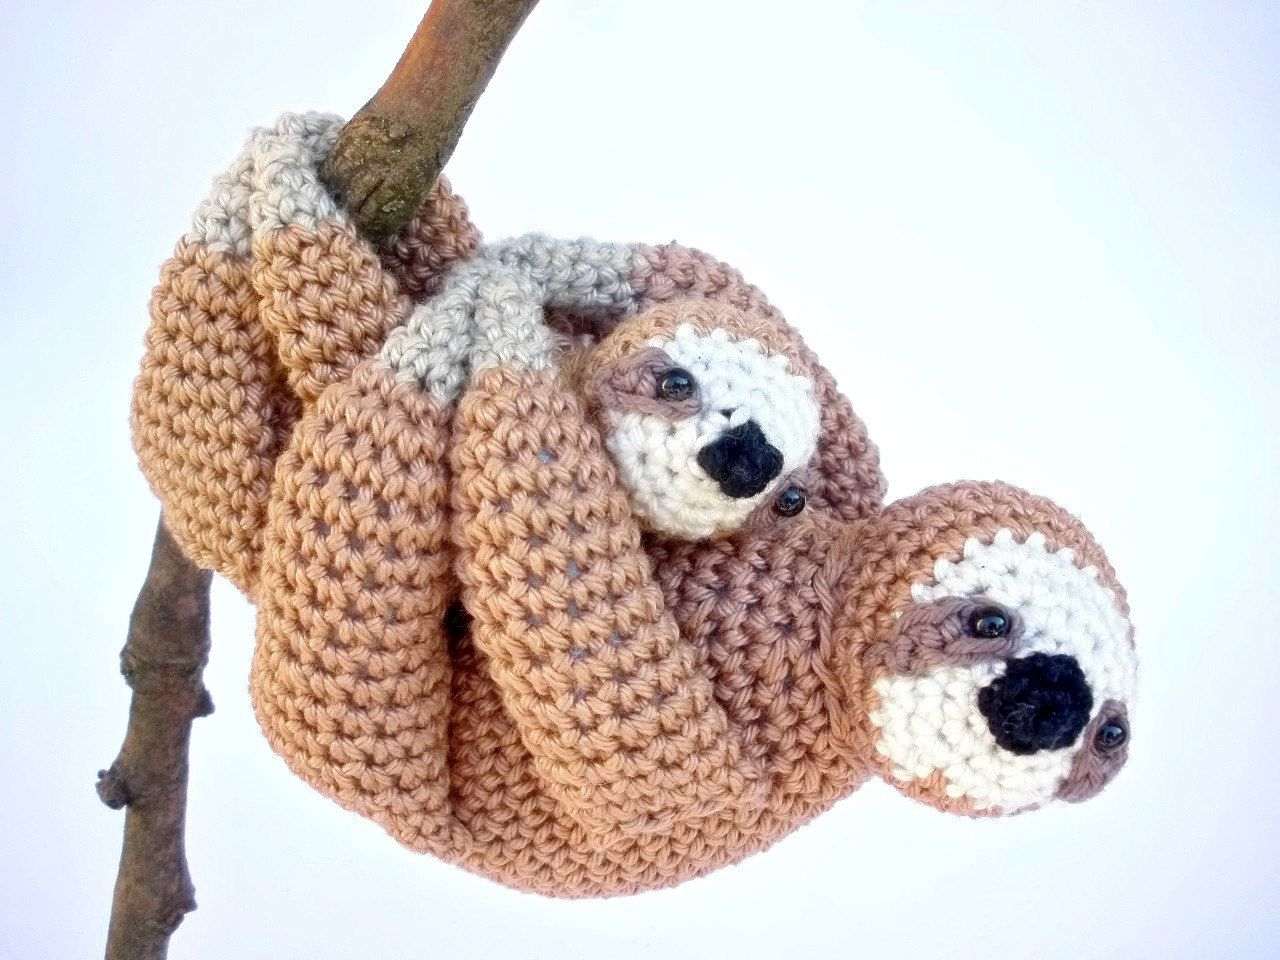 Mother & Baby Sloth Stuffed Animals, Cute Mother's Day Gift by Crochetonatree on Etsy